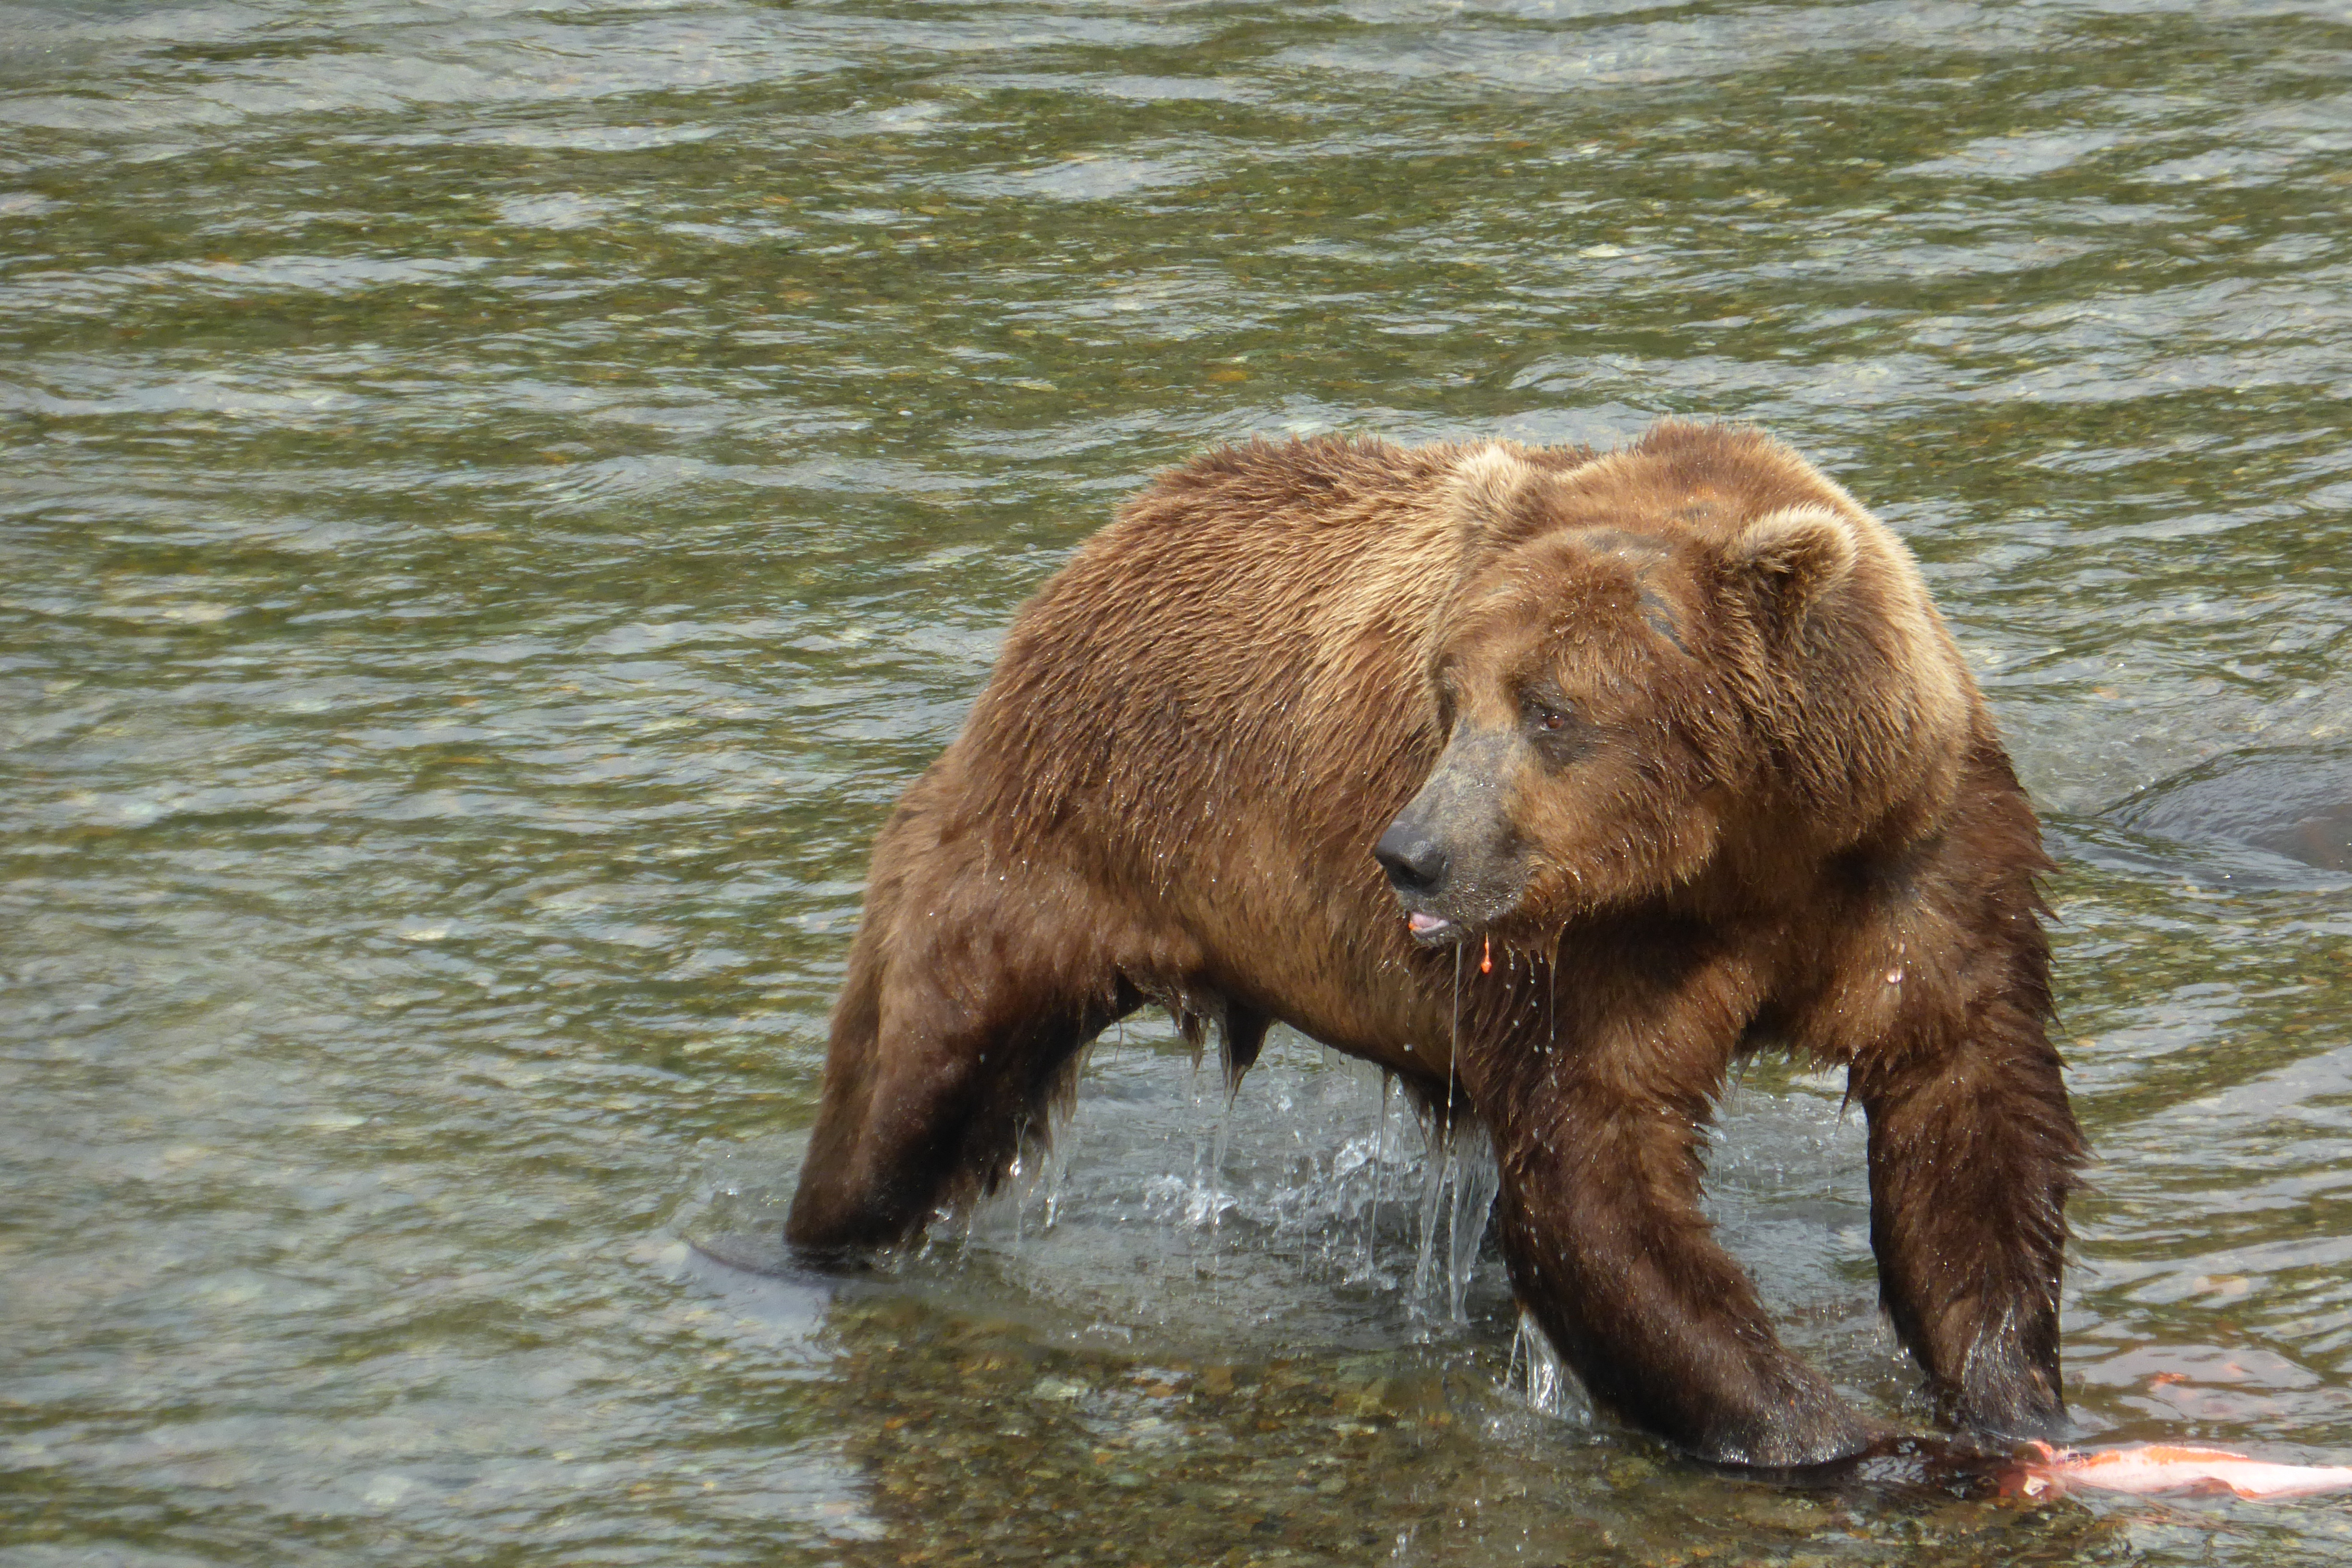 A large brown bear stands in shallow water. He looks toward the left side of the photo. A partly eaten salmon rests at his front paws.